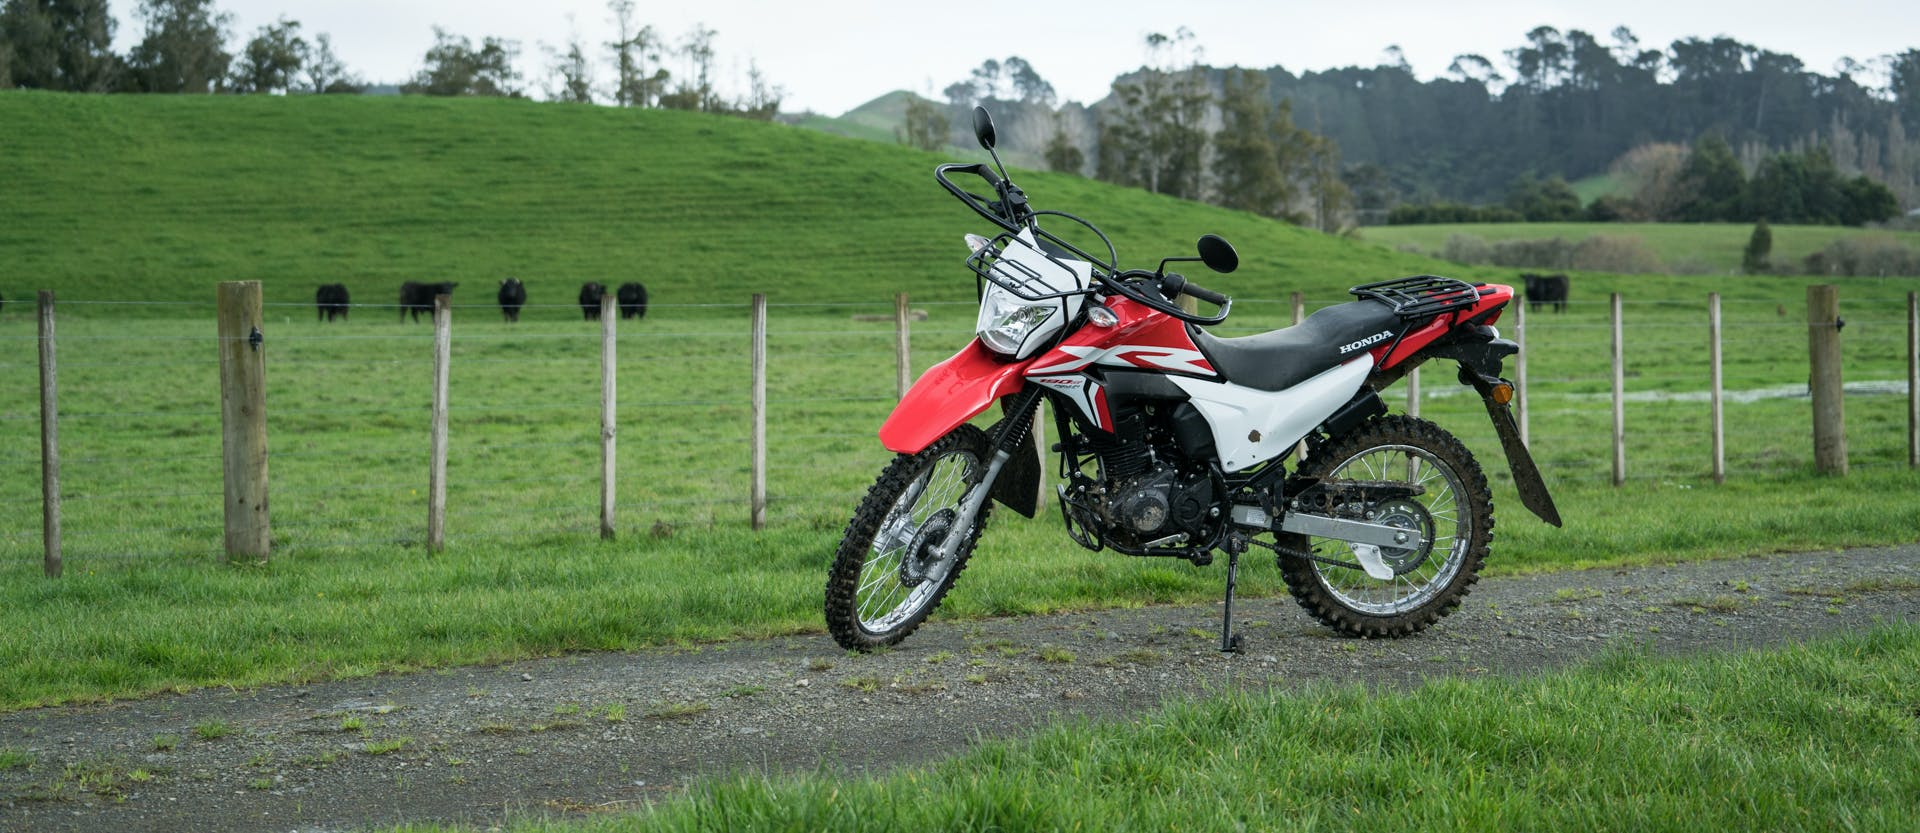 Honda XR190CT AG-XR in fighting red colour parked on the farm road